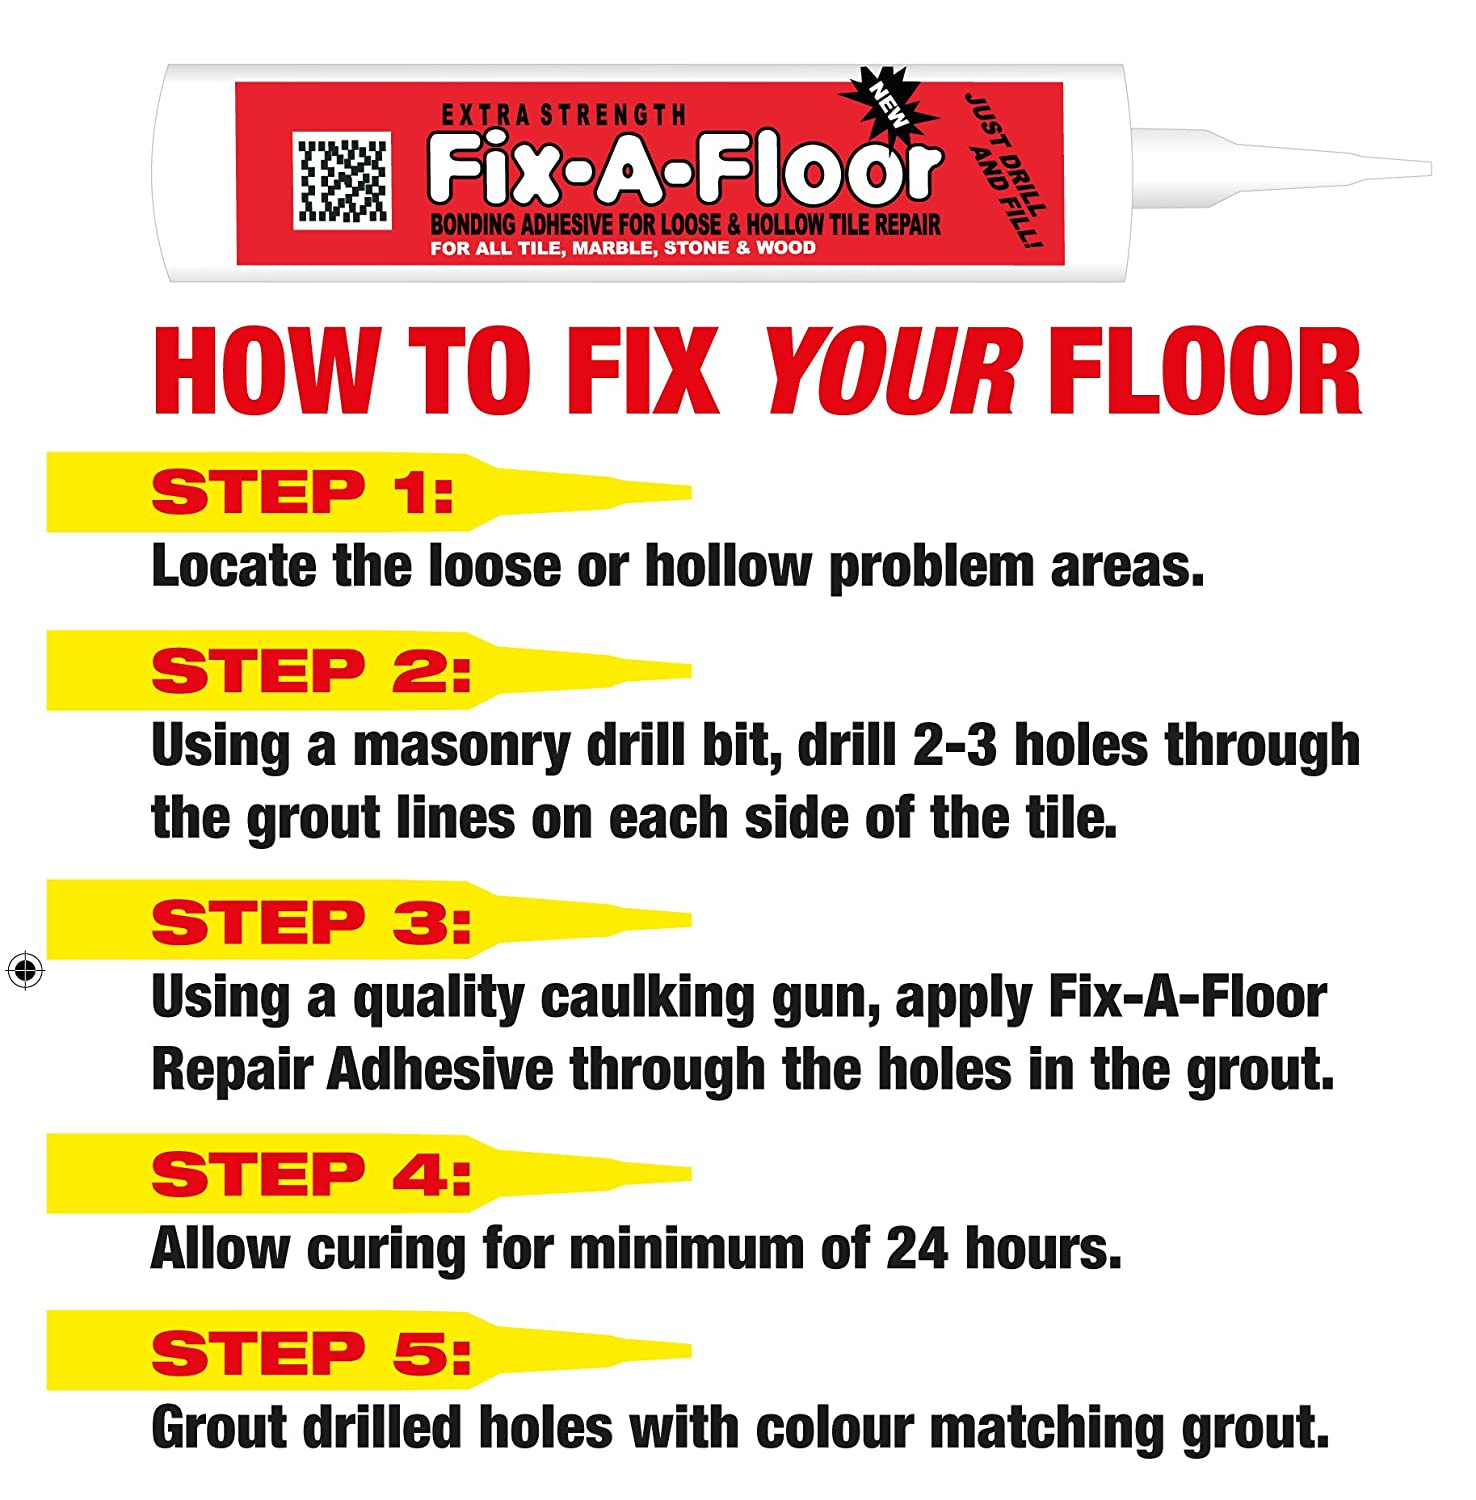 Amazon Fix A Floor Extra Strength Bonding Adhesive For Loose